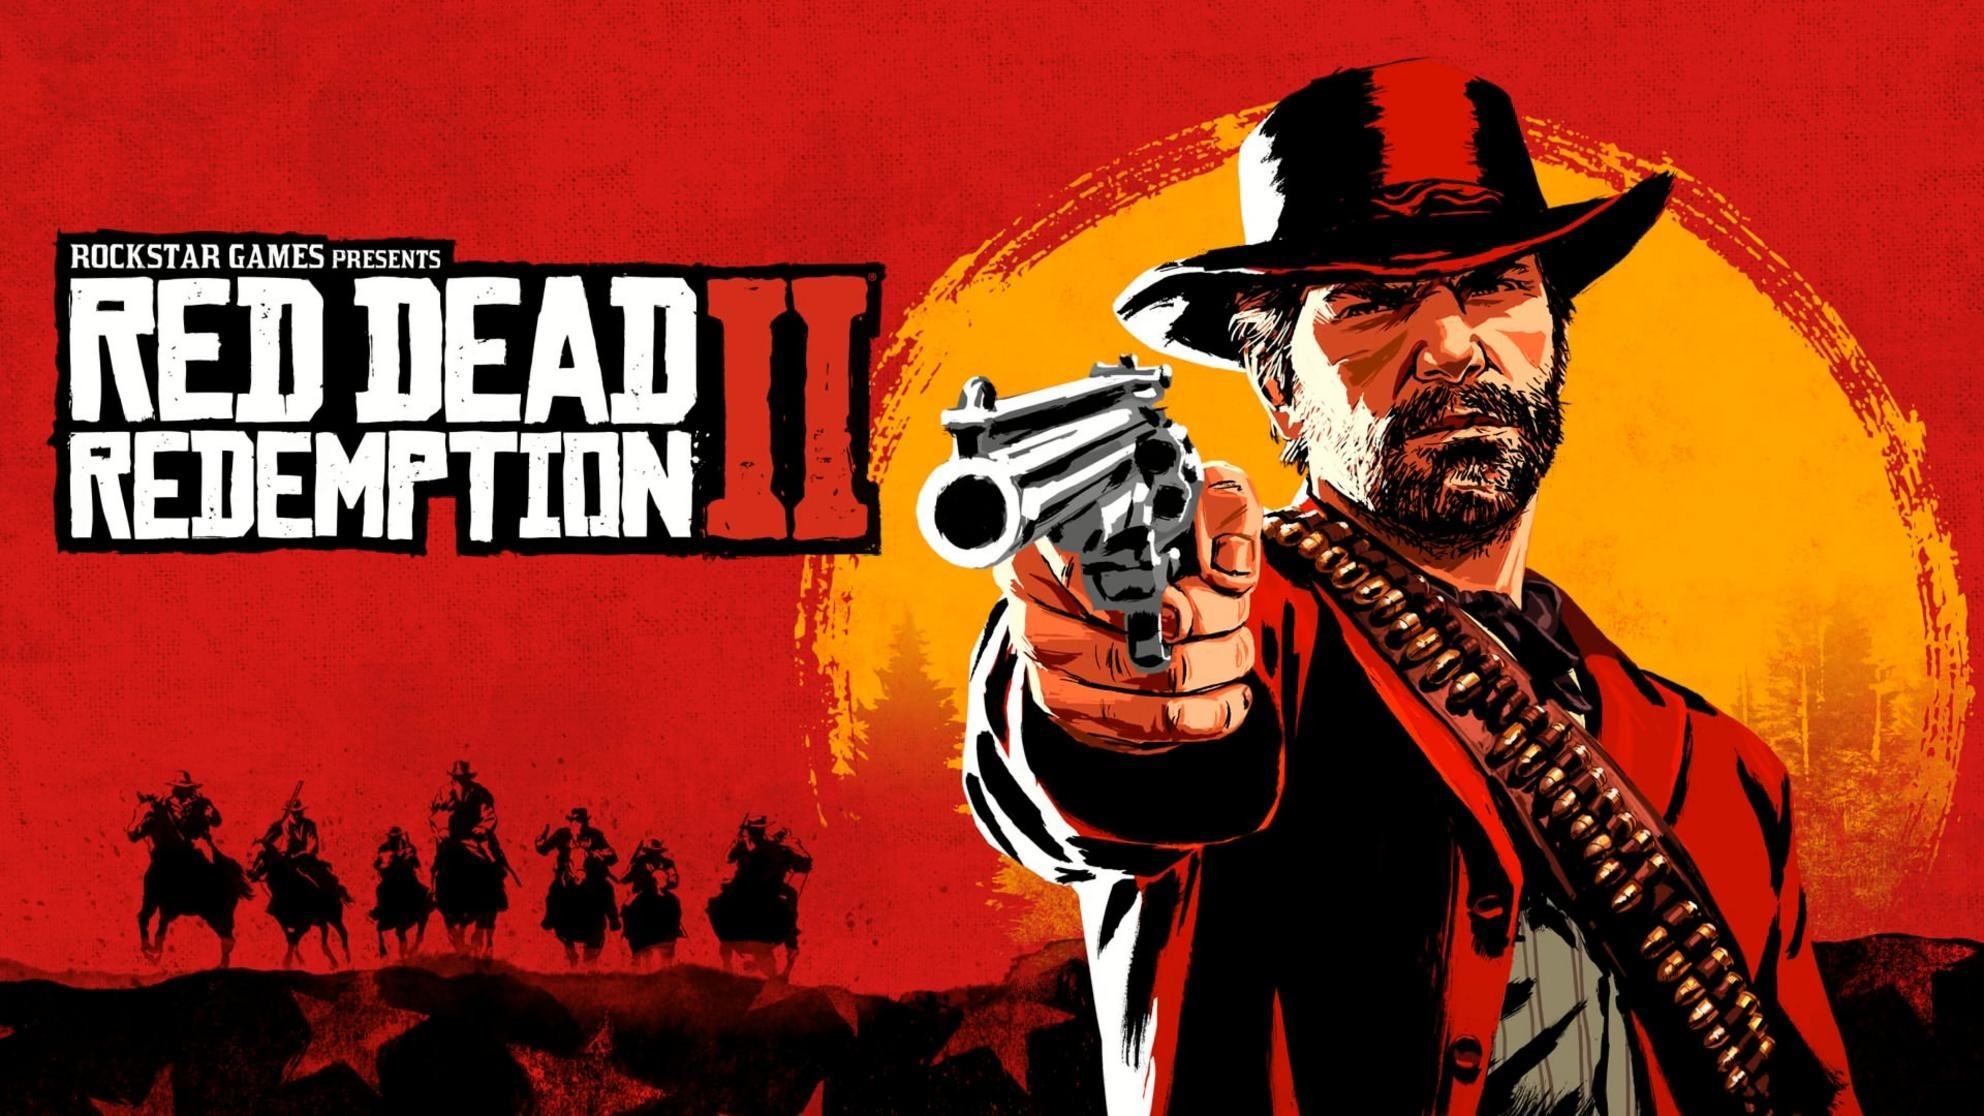 It will take about 65 hours to finish Red Dead Redemption 2